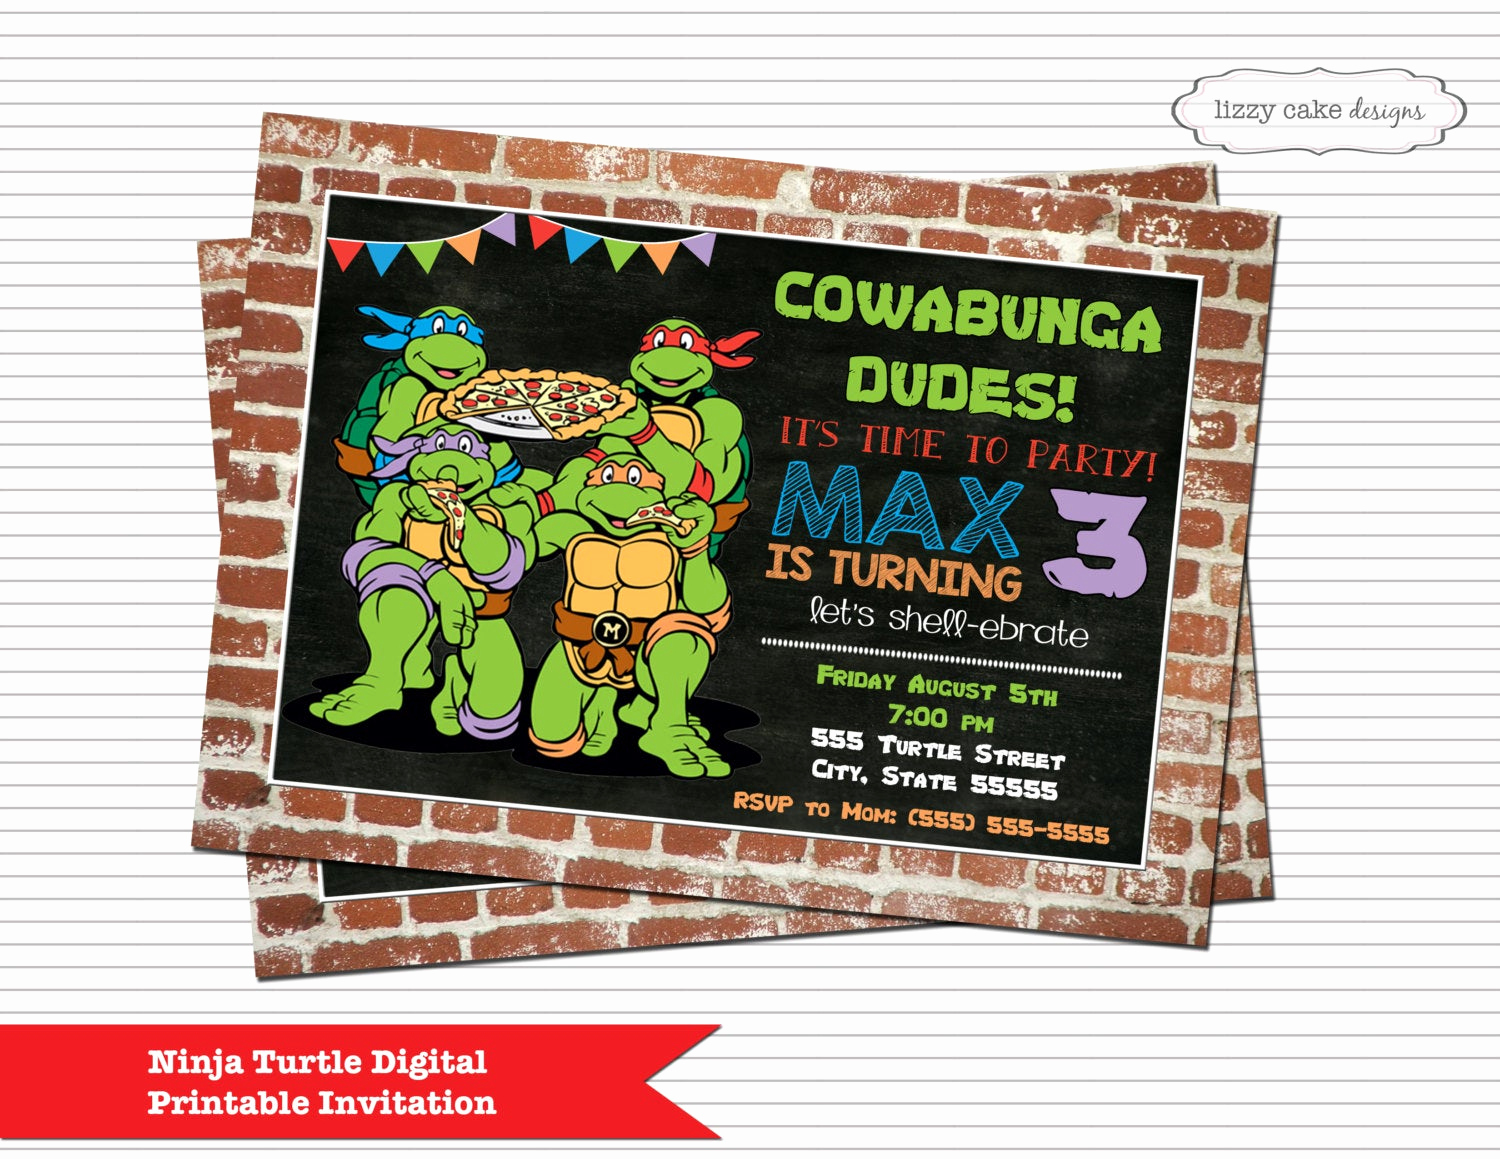 Ninja Turtle Birthday Invitation Fresh Teenage Mutant Ninja Turtle Birthday Invitation Ninja Turtle